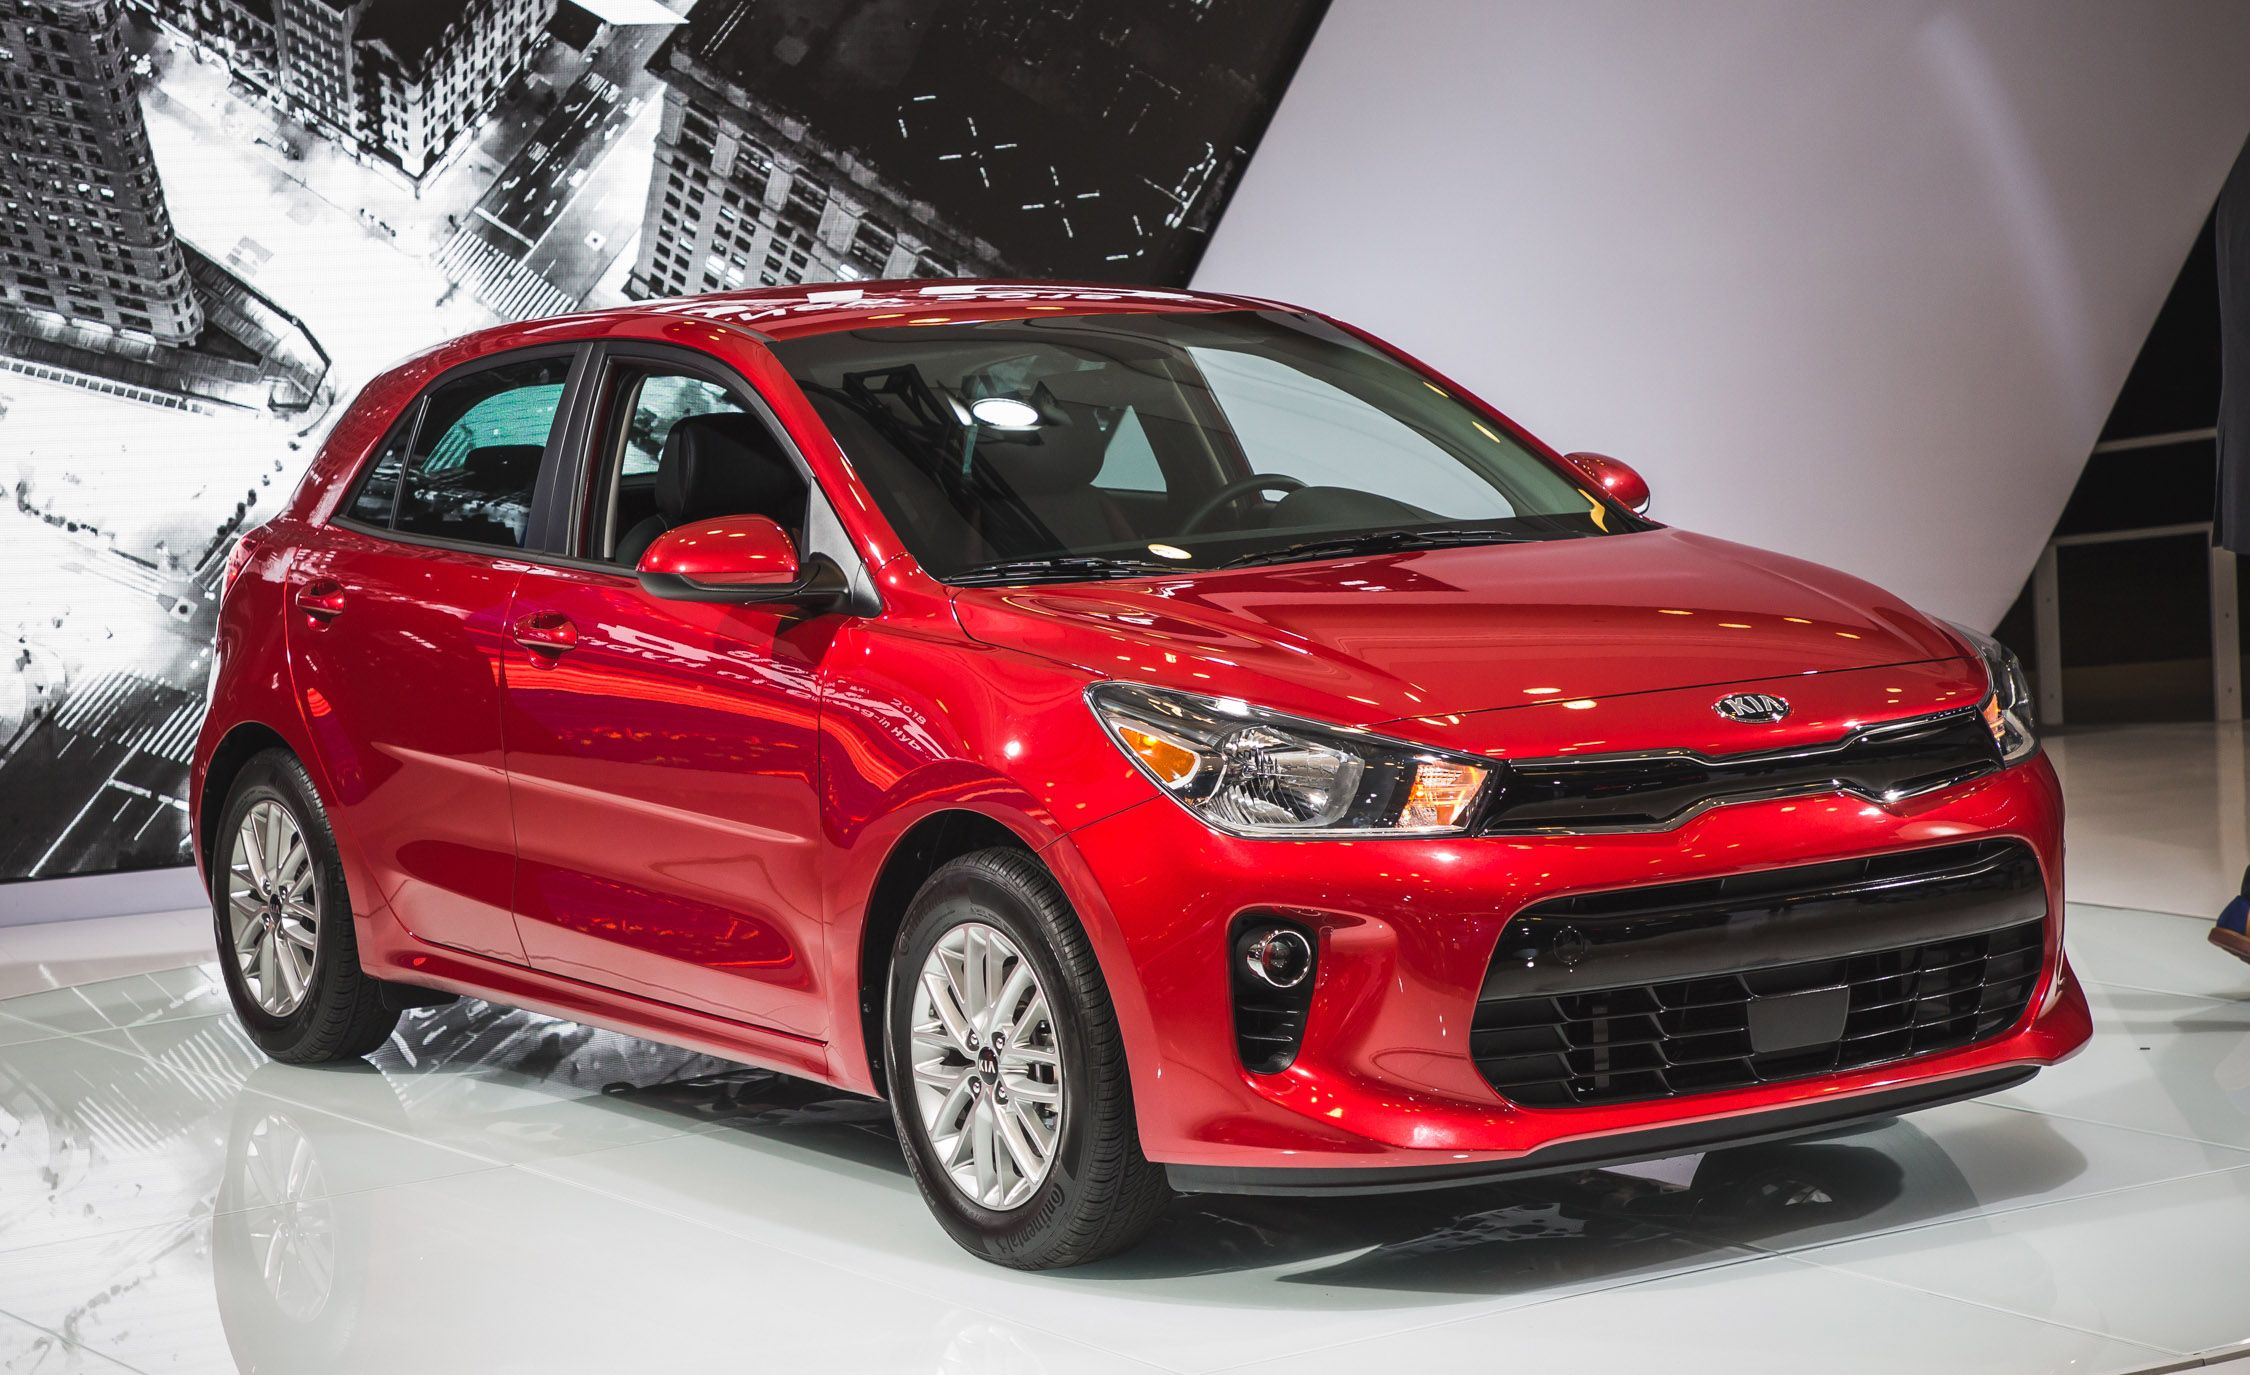 2018 Kia Rio: Like an Optima, Only Smaller